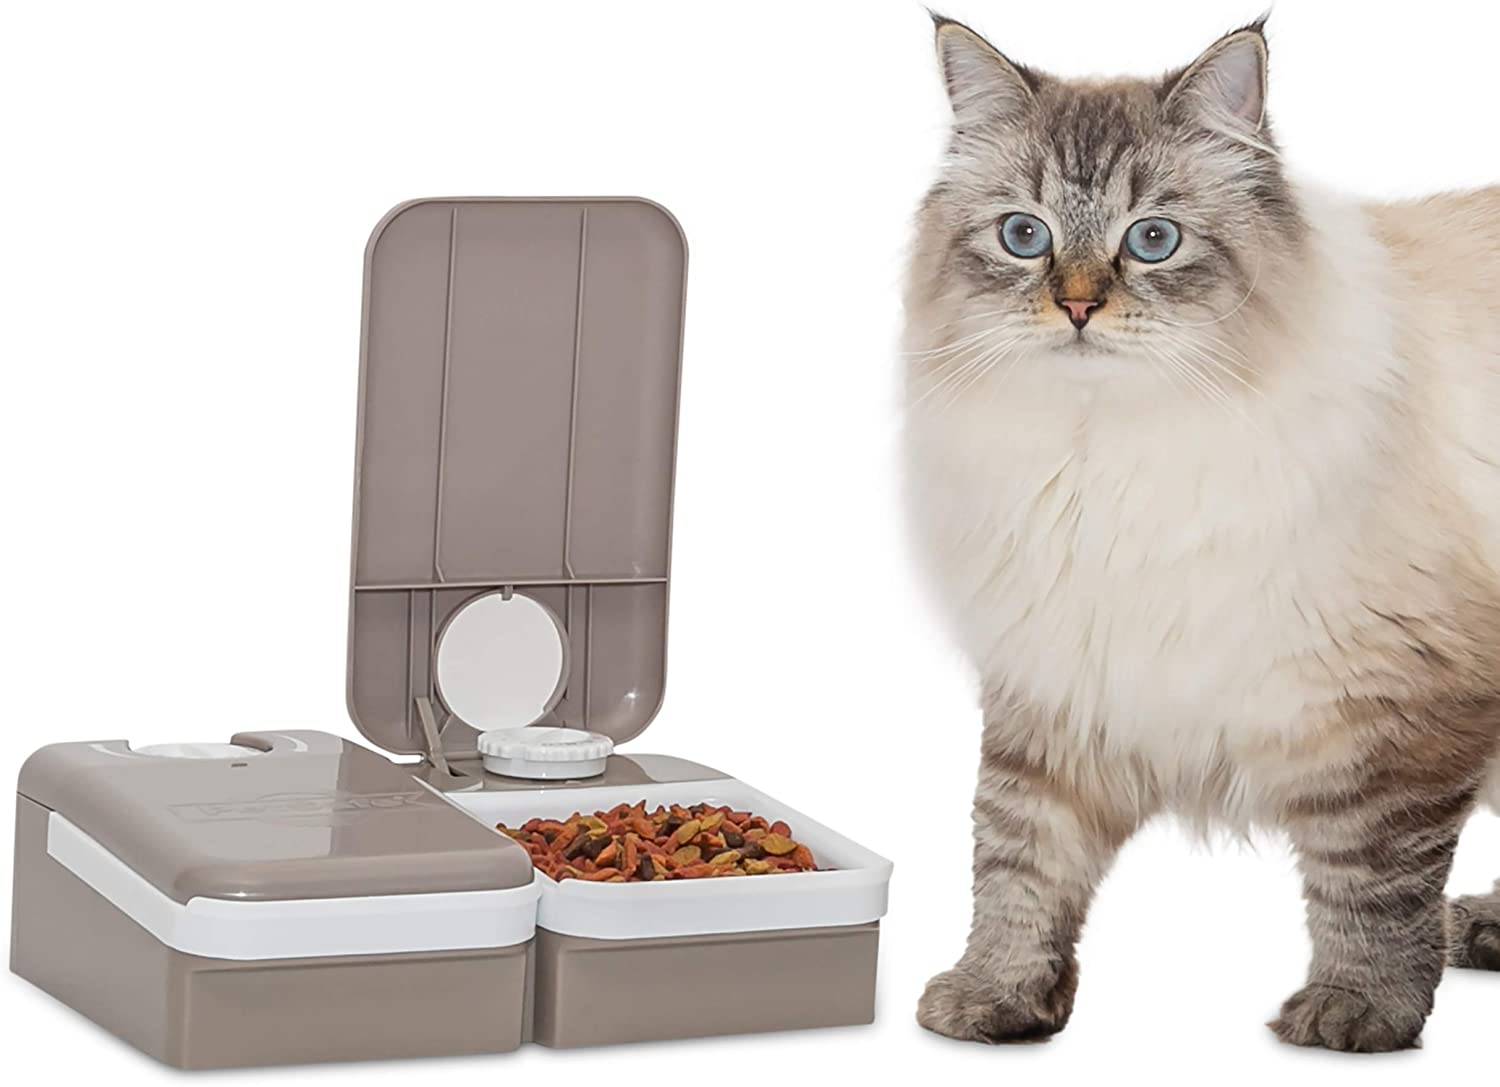 Pet Supplies : PetSafe Automatic 2 Meal Pet Feeder with Battery Powered Programmable Timer, 3 Cups Total Capacity, Cat and Small to Medium Dog Food Dispenser : Pet Self Feeders :